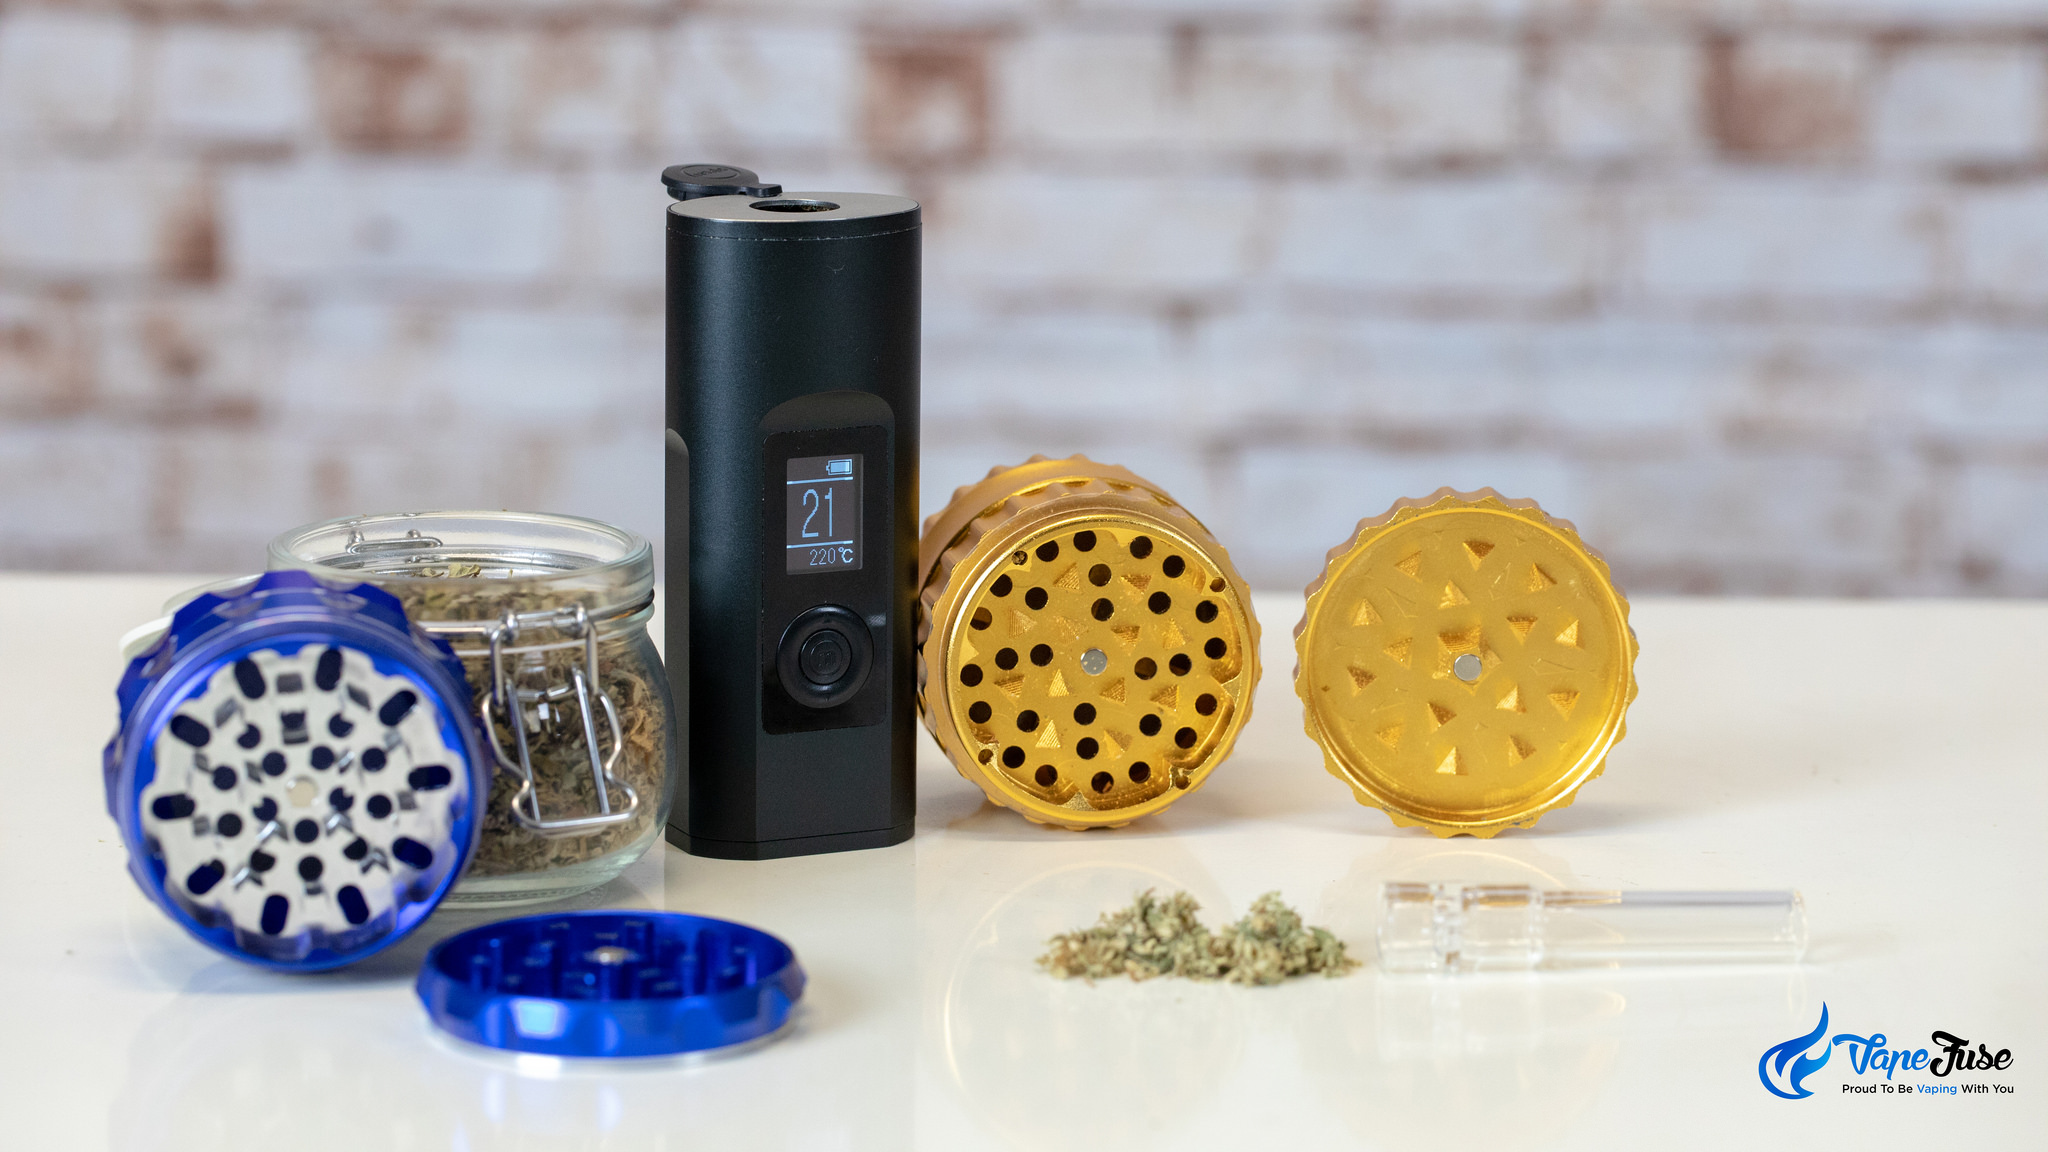 Arizer Solo II portable vaporizer with herb grinders